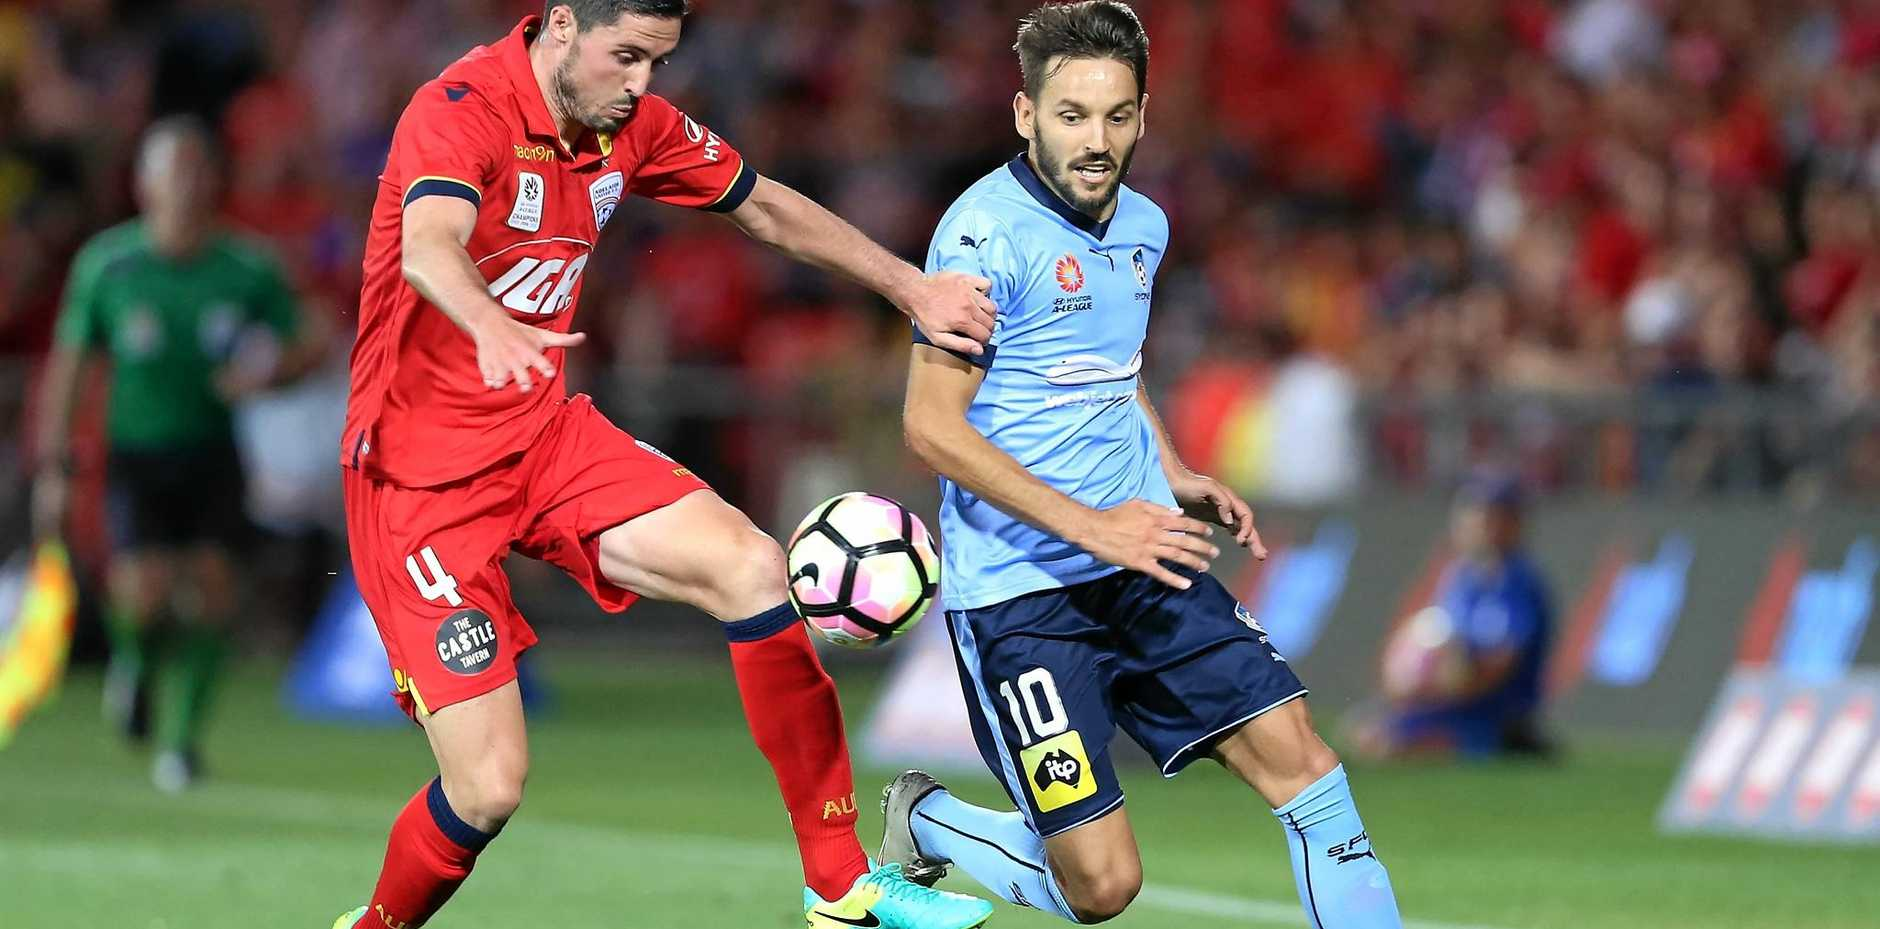 Dylan McGowan of Adelaide United (left) clashes with Milos Ninkovic of Sydney FC.